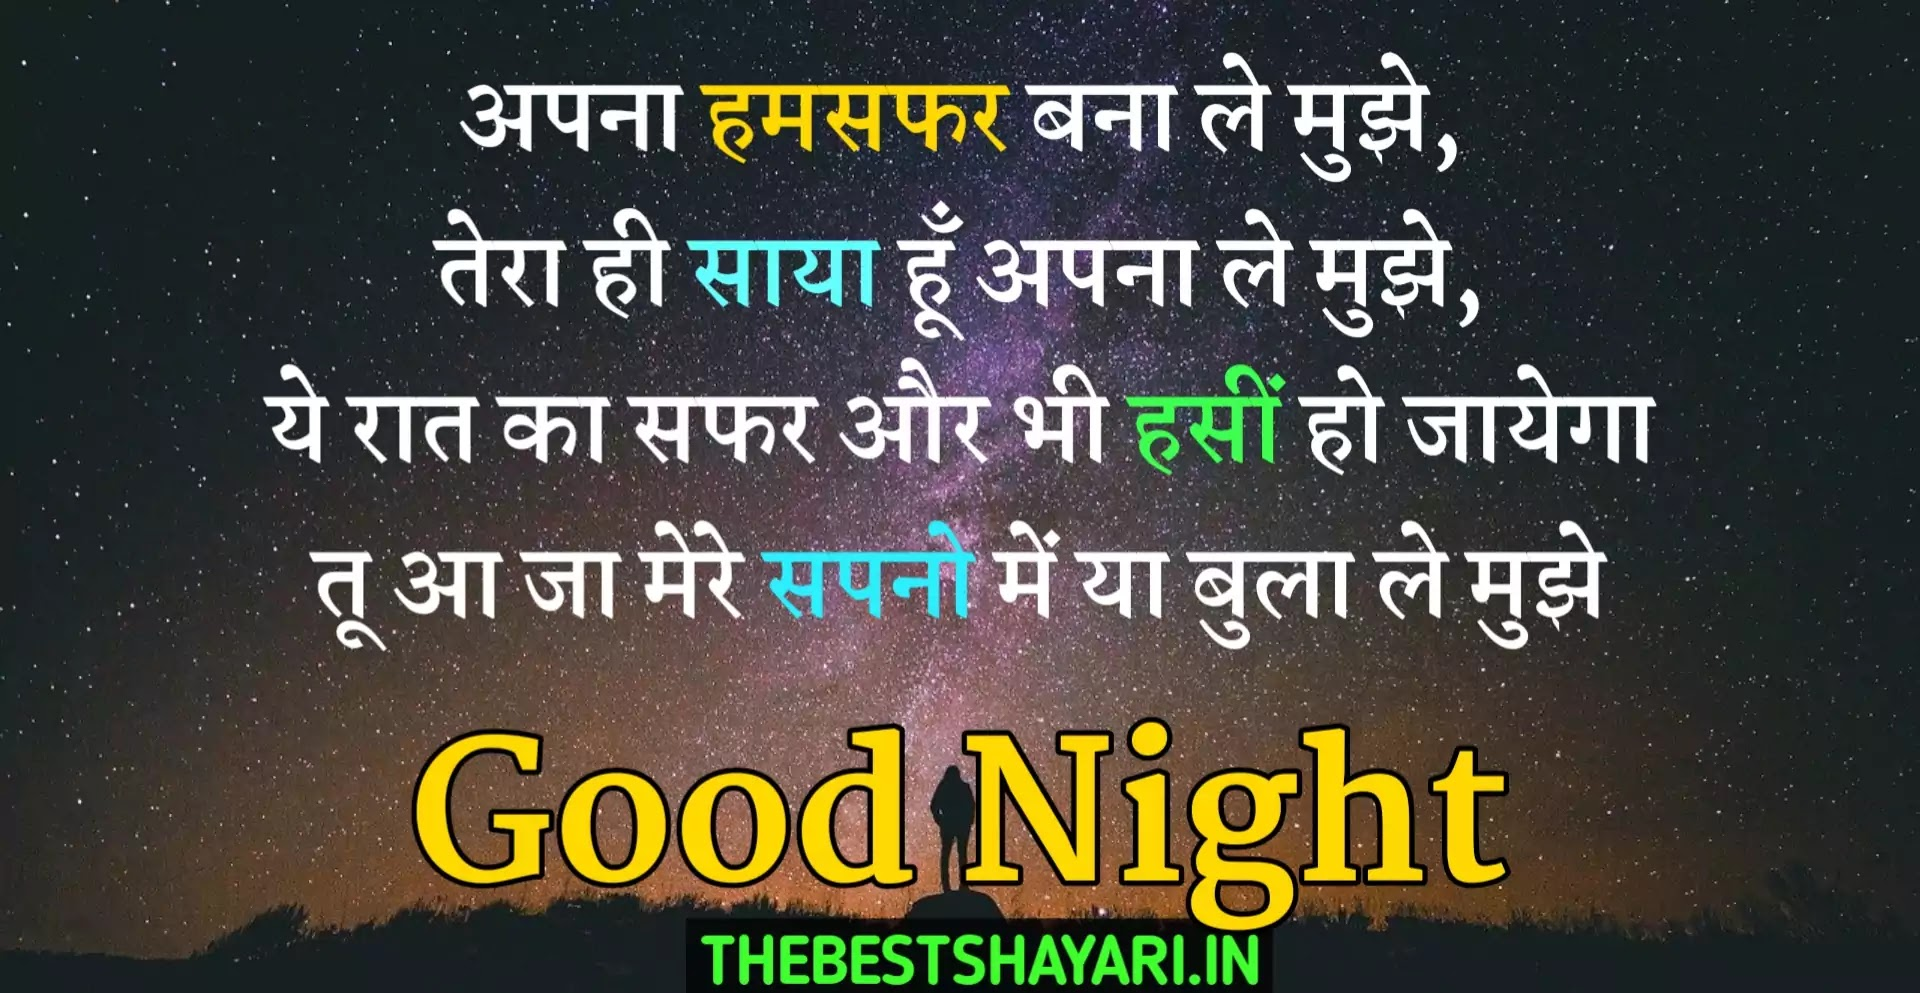 Good night message for love